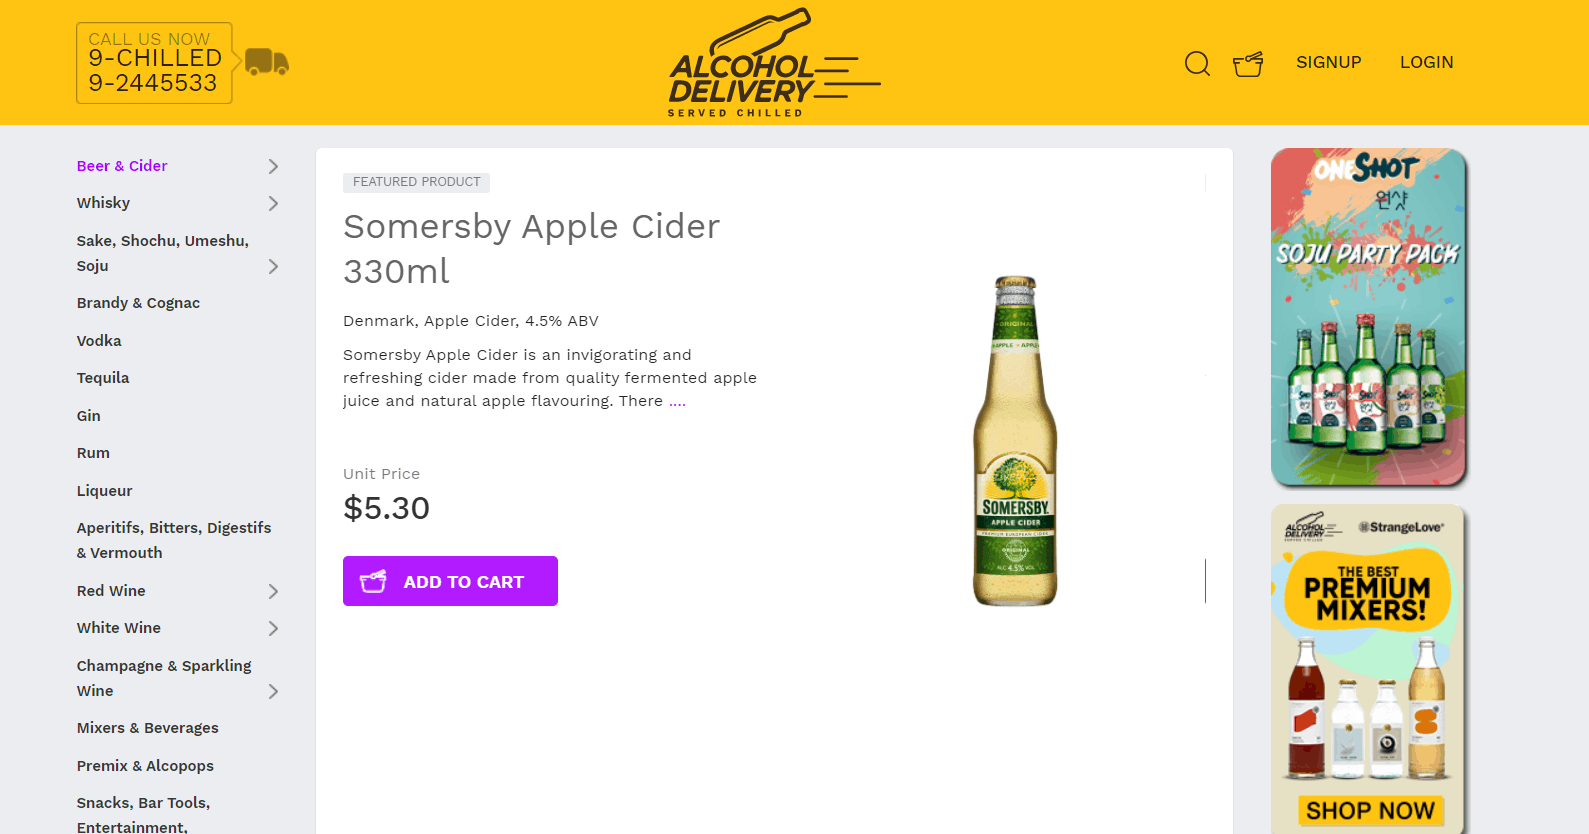 Alcohol Delivery SG is the cheapest place to buy alcohol in Singapore